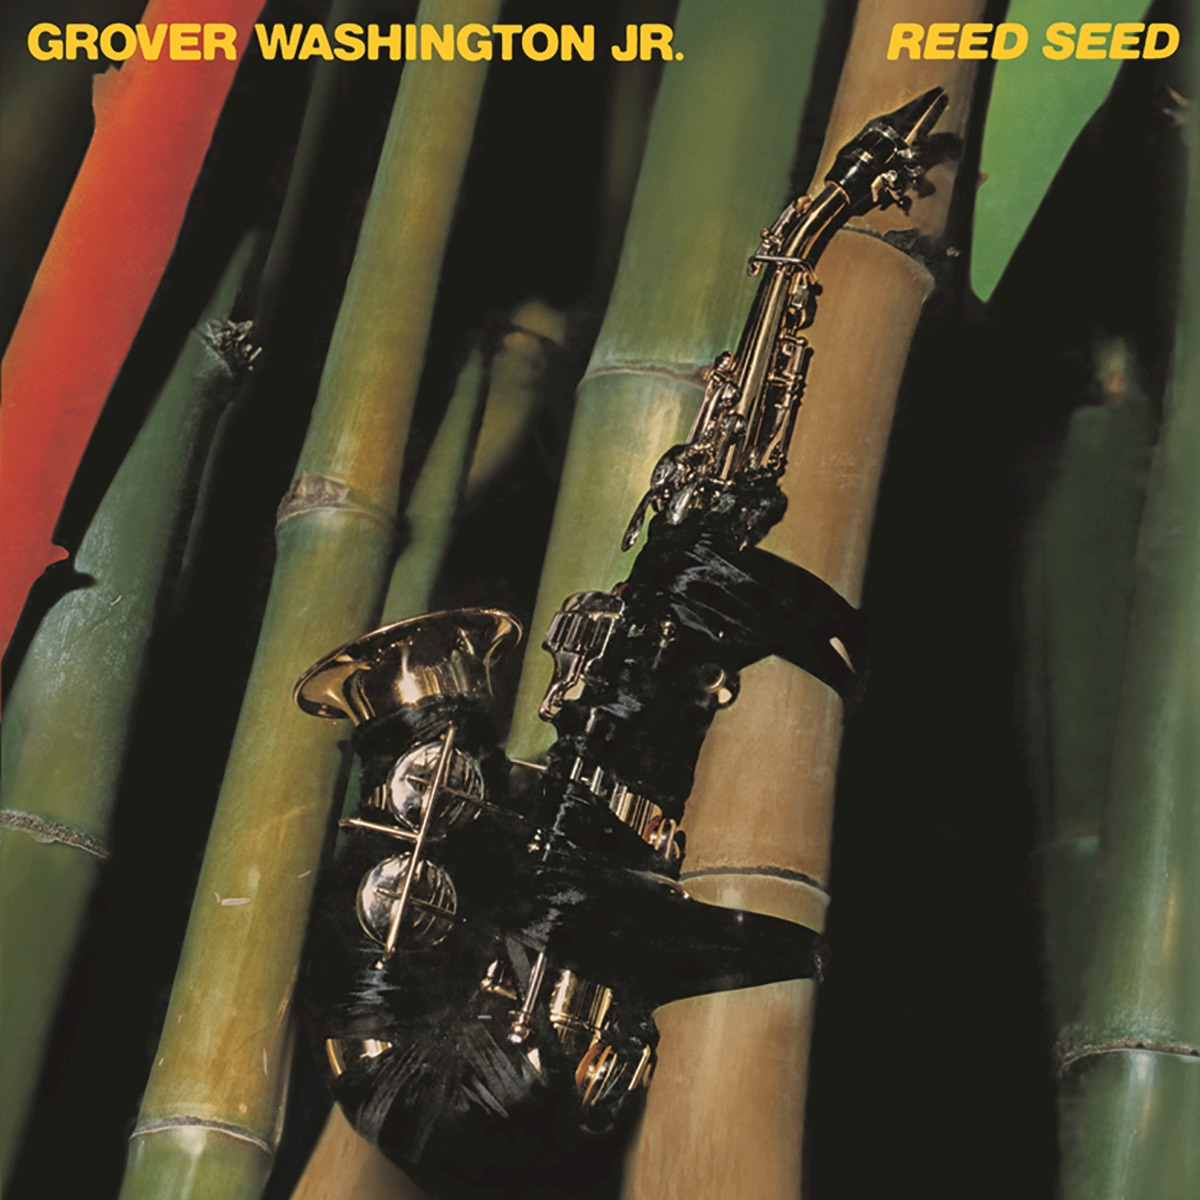 Reed Seed Album Cover By Grover Washington Jr